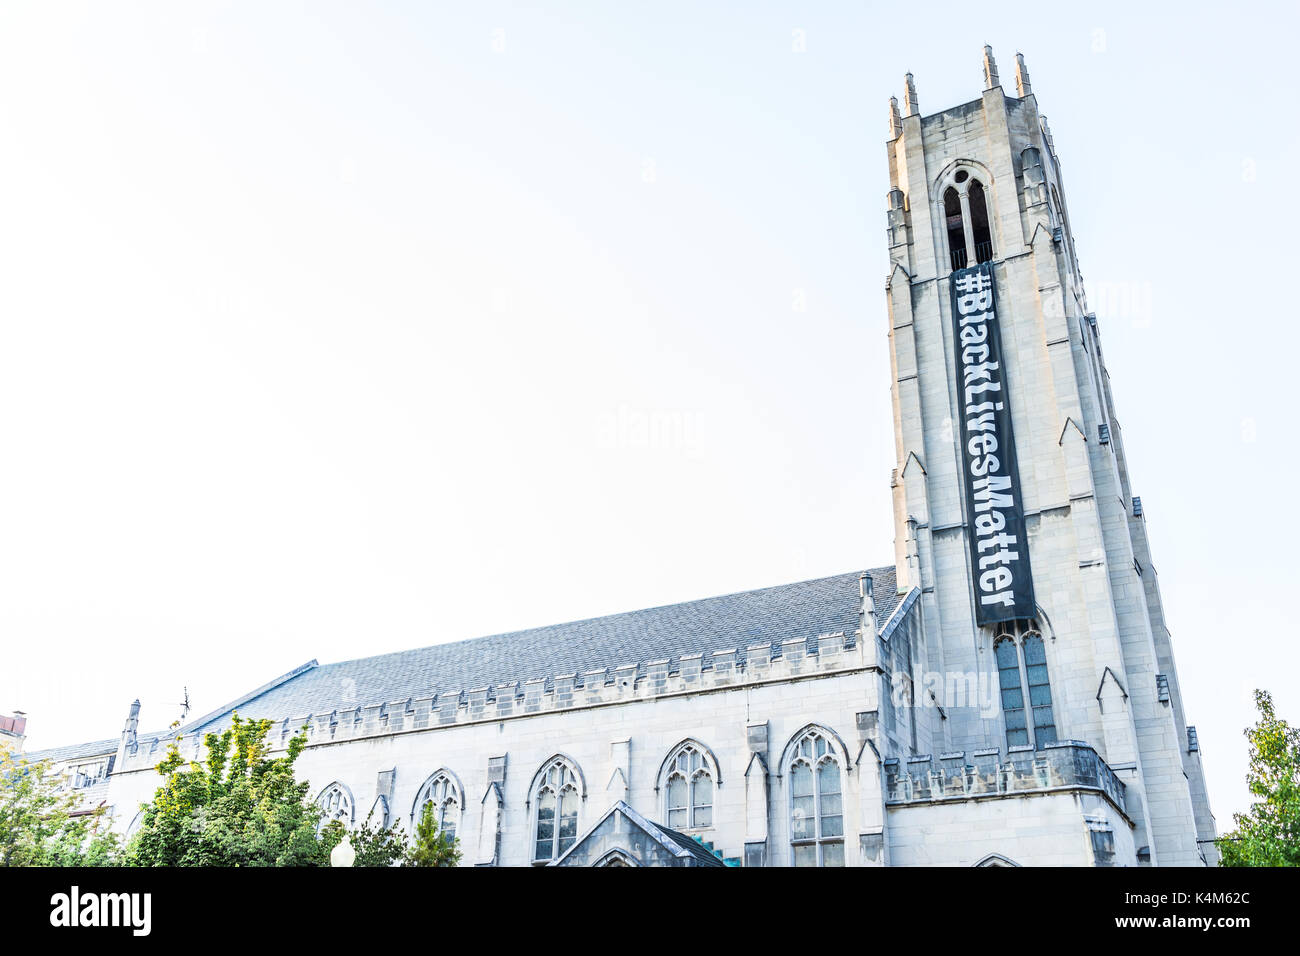 Washington DC, USA - August 4, 2017: Church of the Pilgrims building exterior with sign for Black Lives Matter - Stock Image